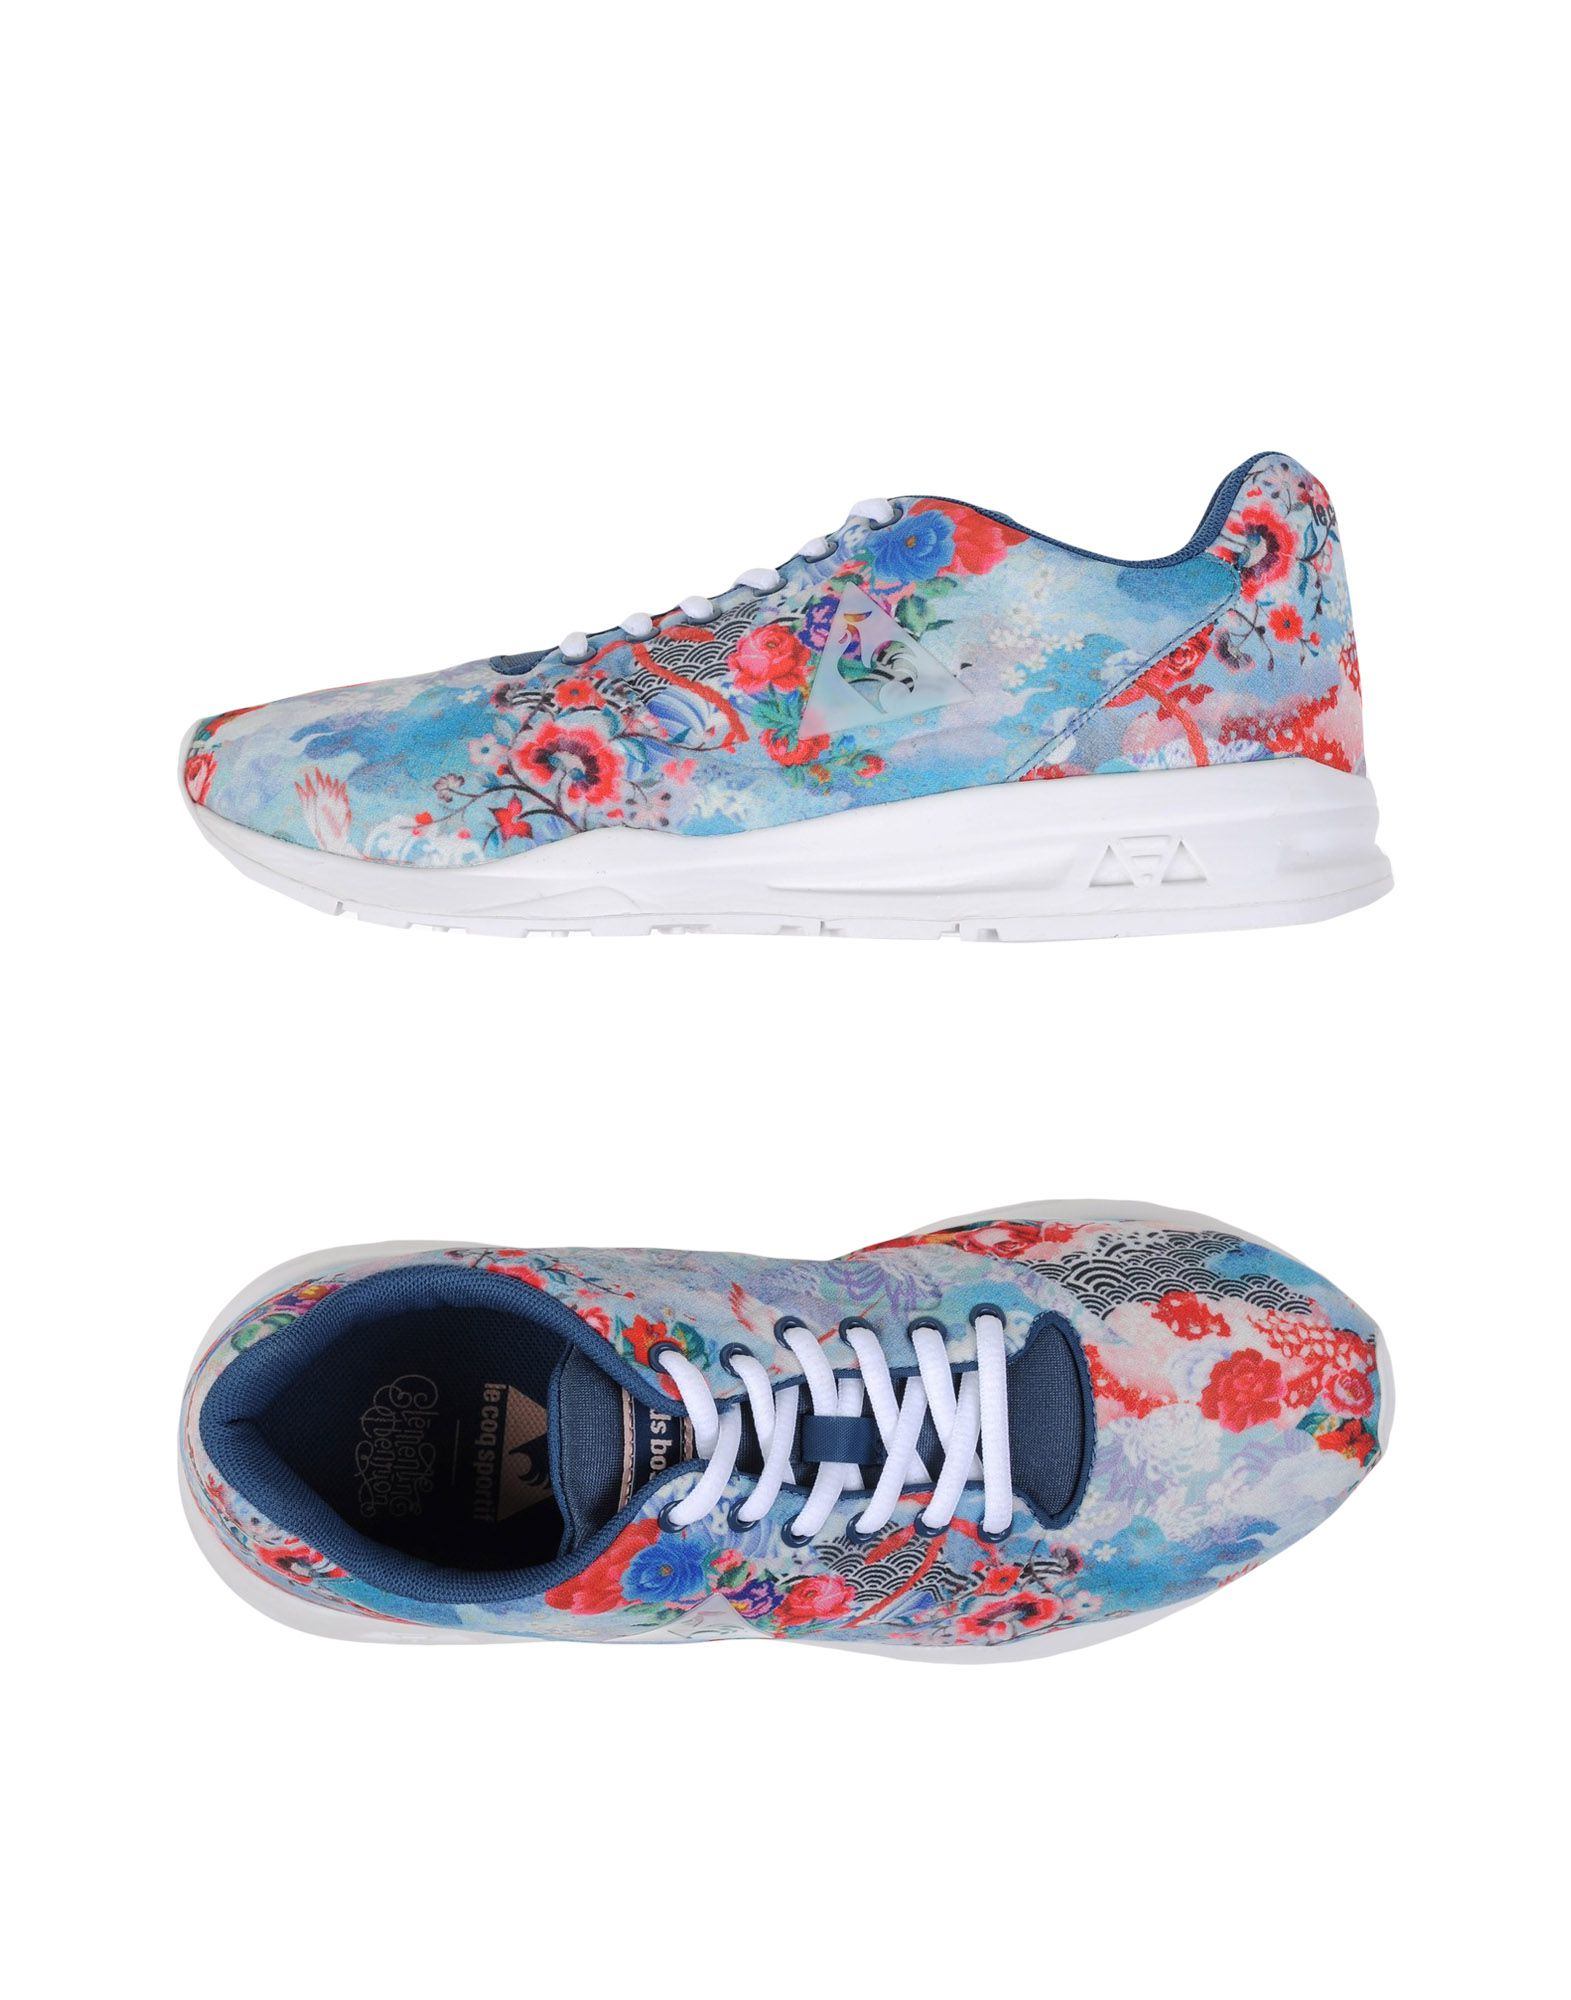 Sportif Femme Coq Patchwork W R9xx Le Lcs Sneakers RP4ffq